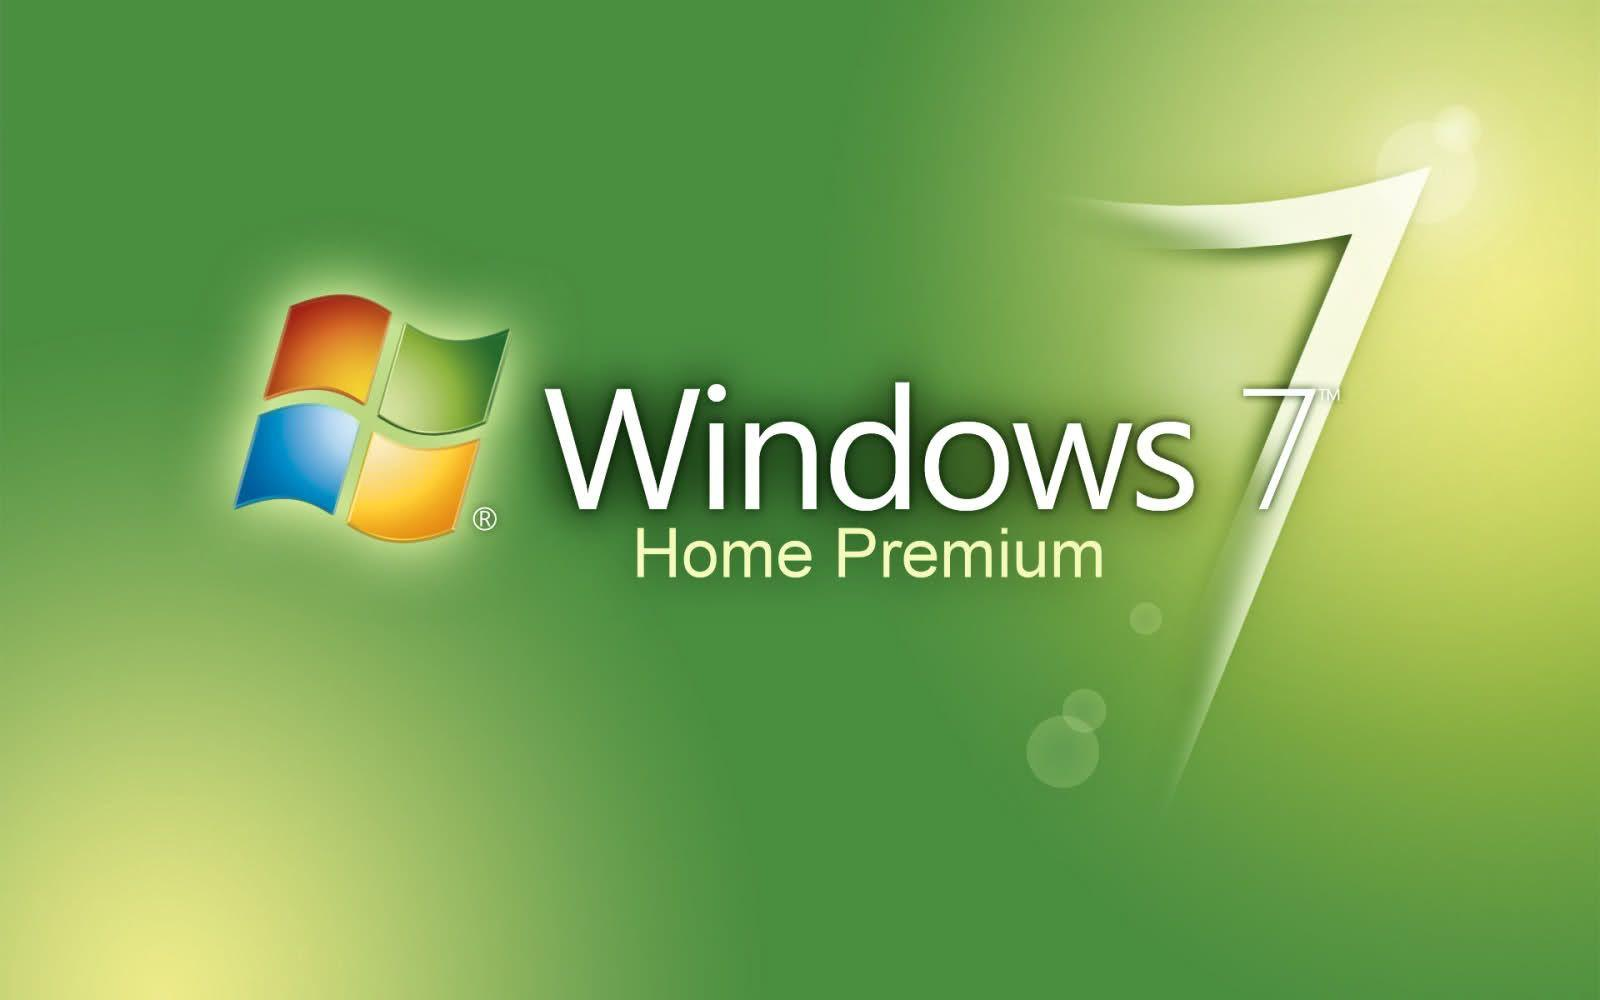 Windows 7 home premium wallpapers wallpaper cave for Home wallpaper 0